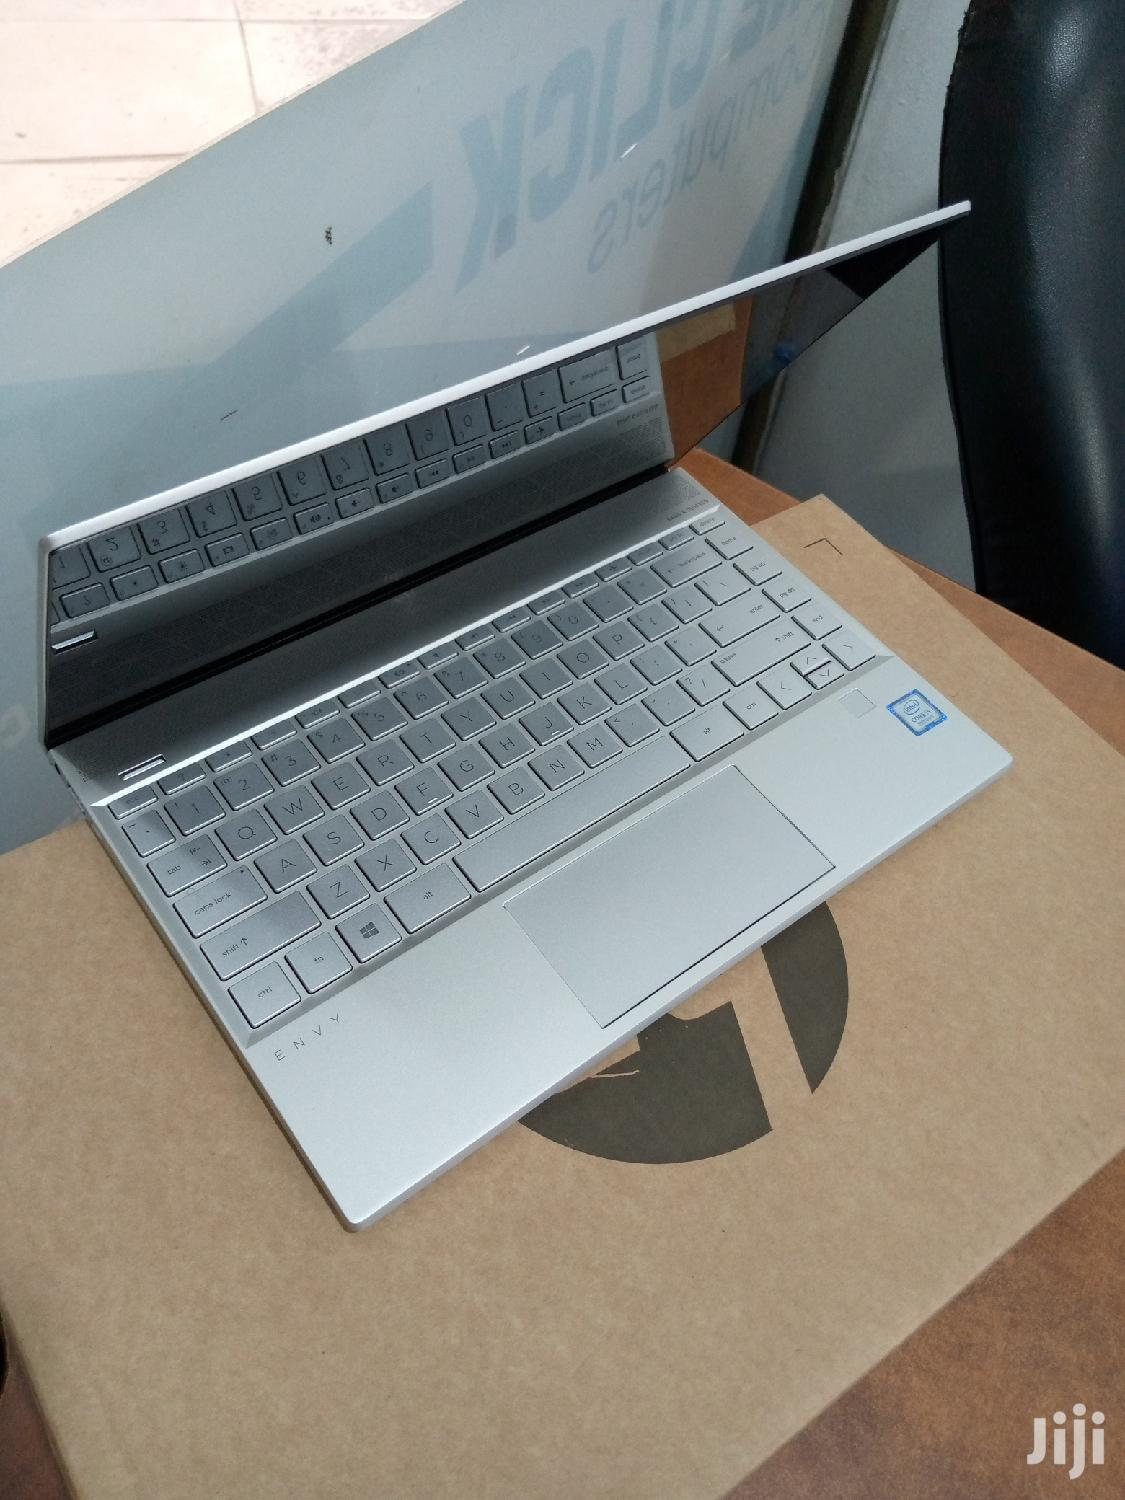 New Laptop HP Envy 13 8GB Intel Core I5 SSHD (Hybrid) 256GB | Laptops & Computers for sale in Kampala, Central Region, Uganda